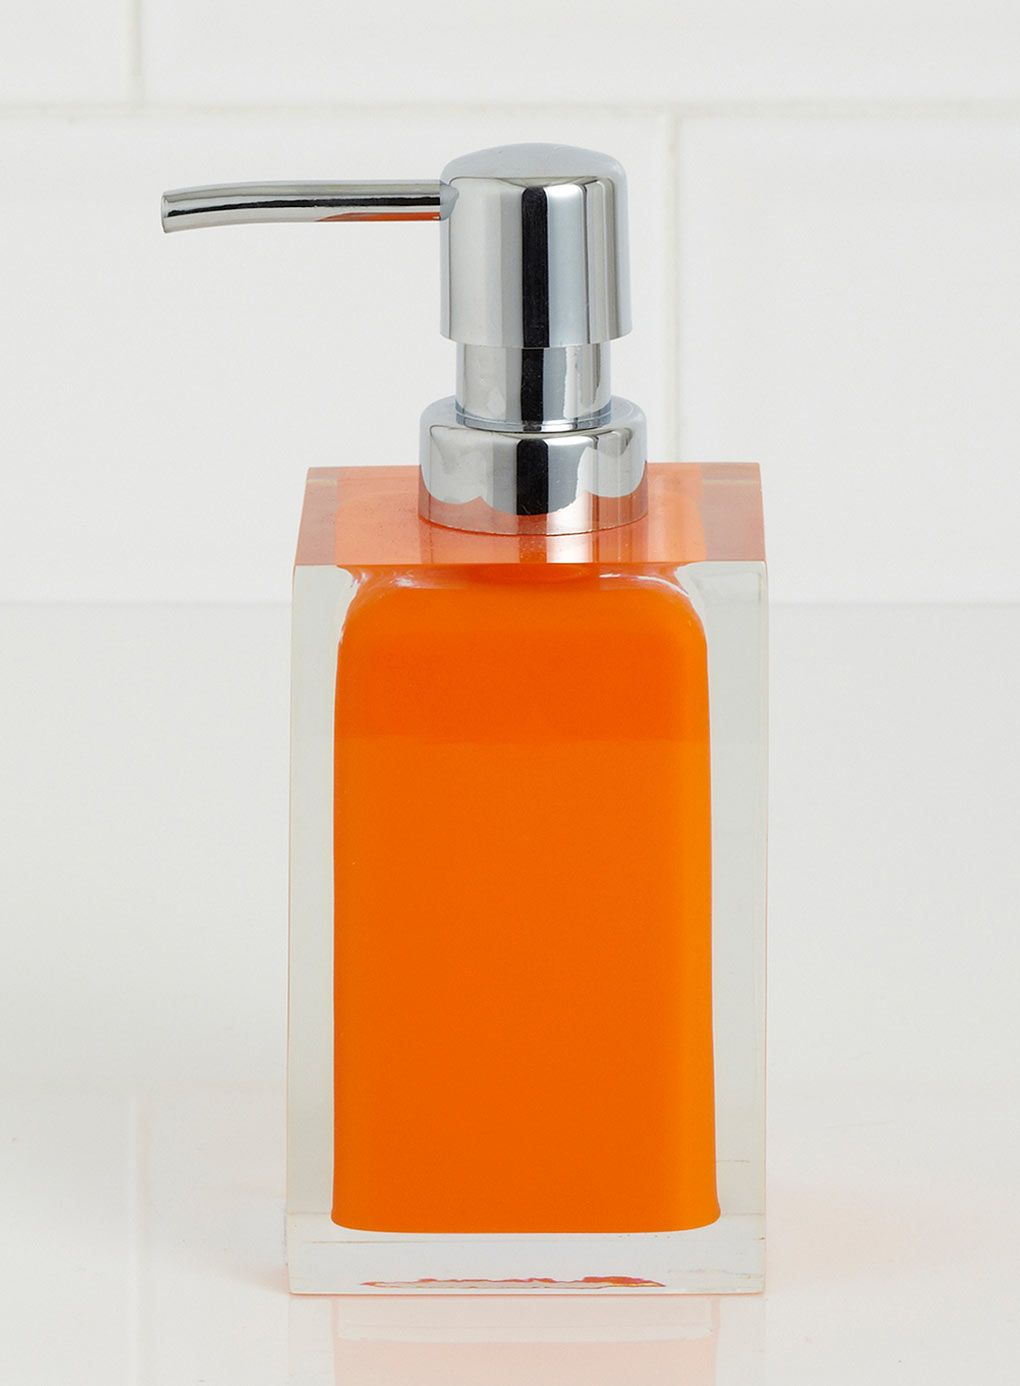 Plastic bathroom accessories uk - Bright Orange Square Resin Soap Dispenser Bathroom Accessories Home Lighting Furniture